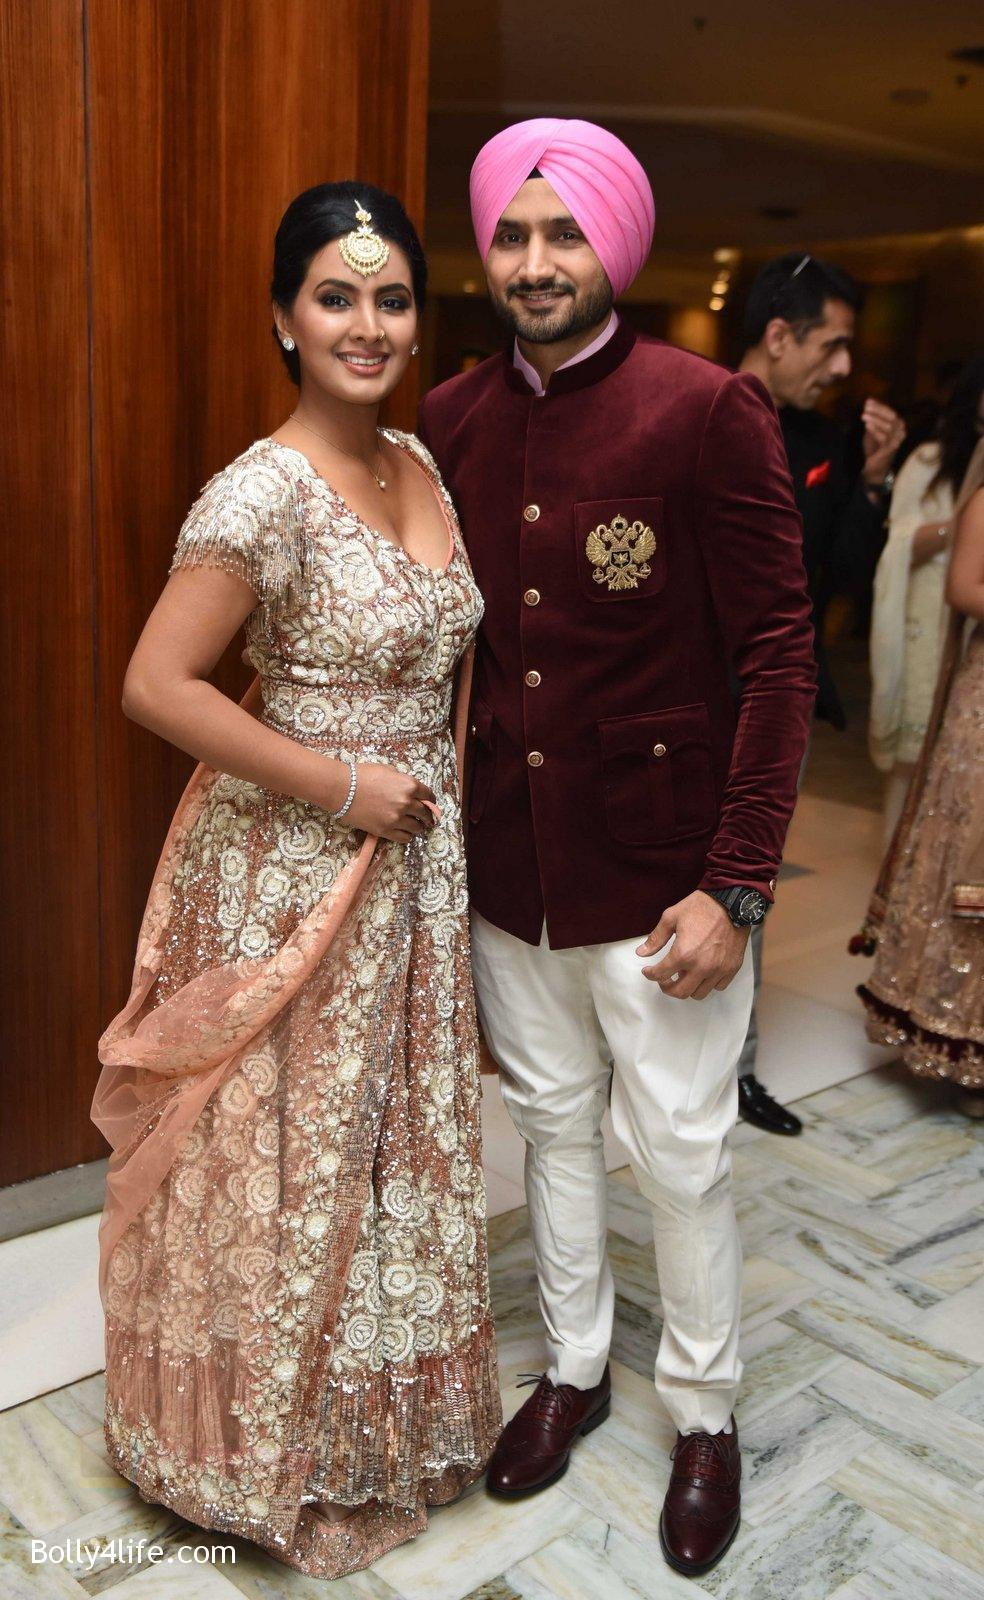 Bhajji-Geeta-Basra-at-Yuvraj-Singh-and-Hazel-Keech-Wedding-Reception-on-7th-Dec-2016.jpg